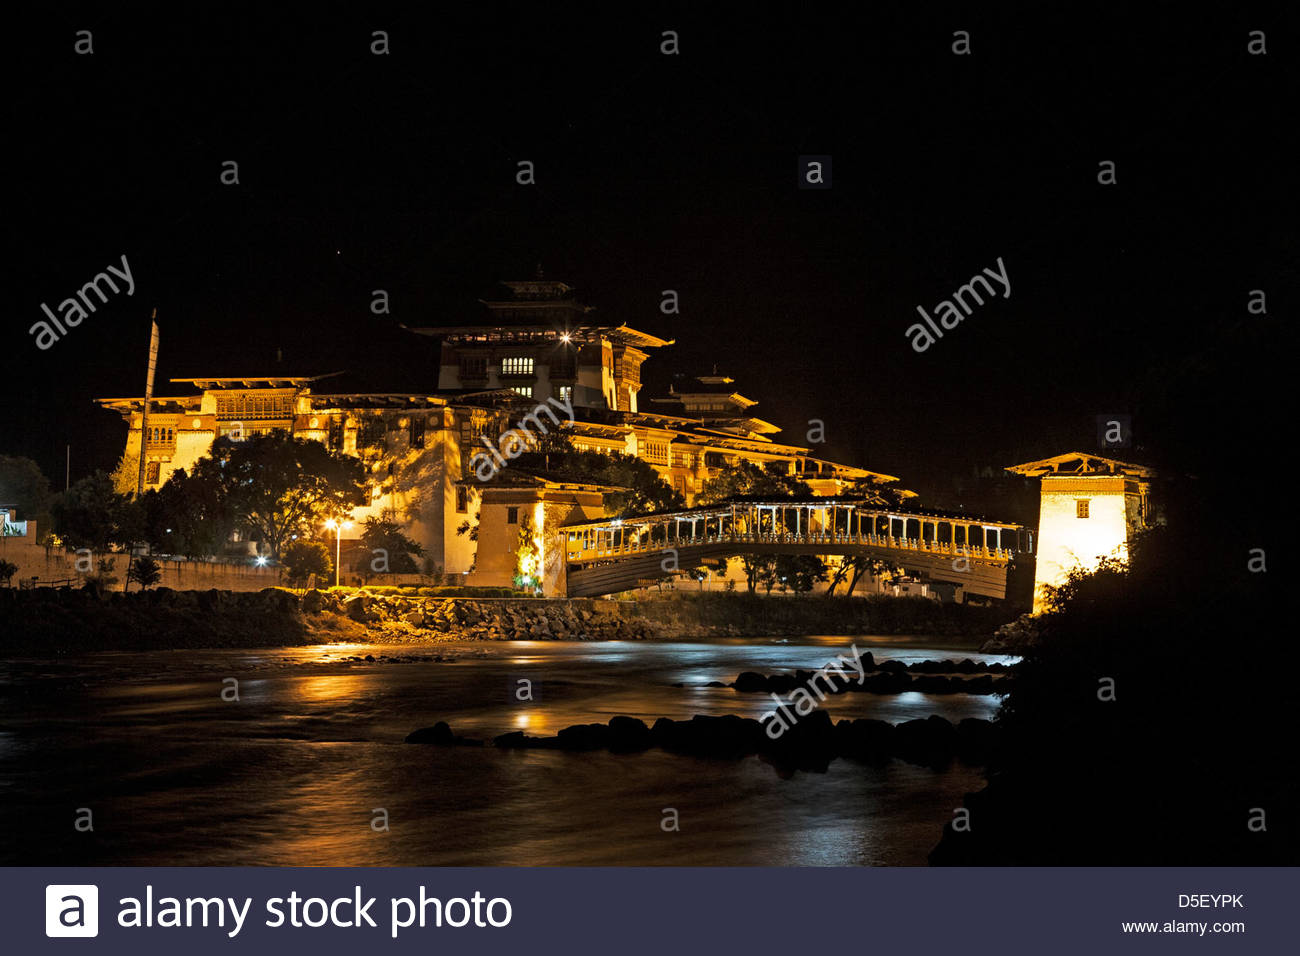 The Punakha Dzong (fortress) at the confluence of the Mo and Pho Chhu (rivers). Bhutan. - Stock Image